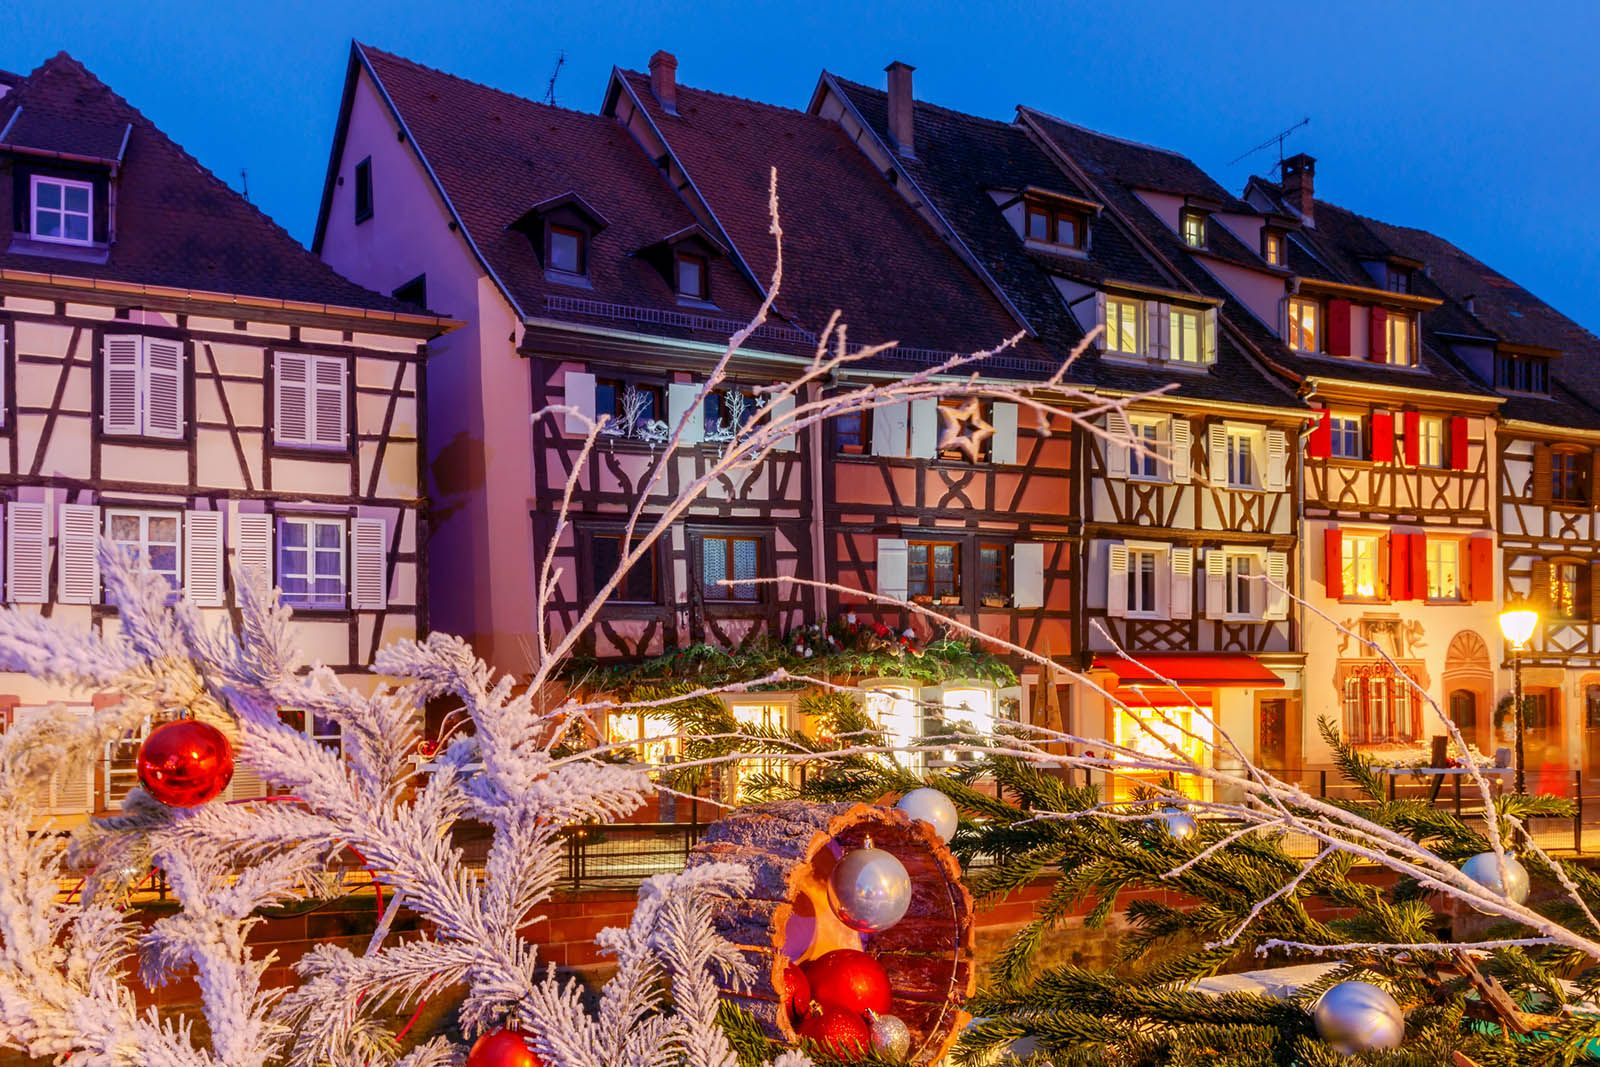 Décoration de Noël à Colmar - AdobeStock copyright pillerss